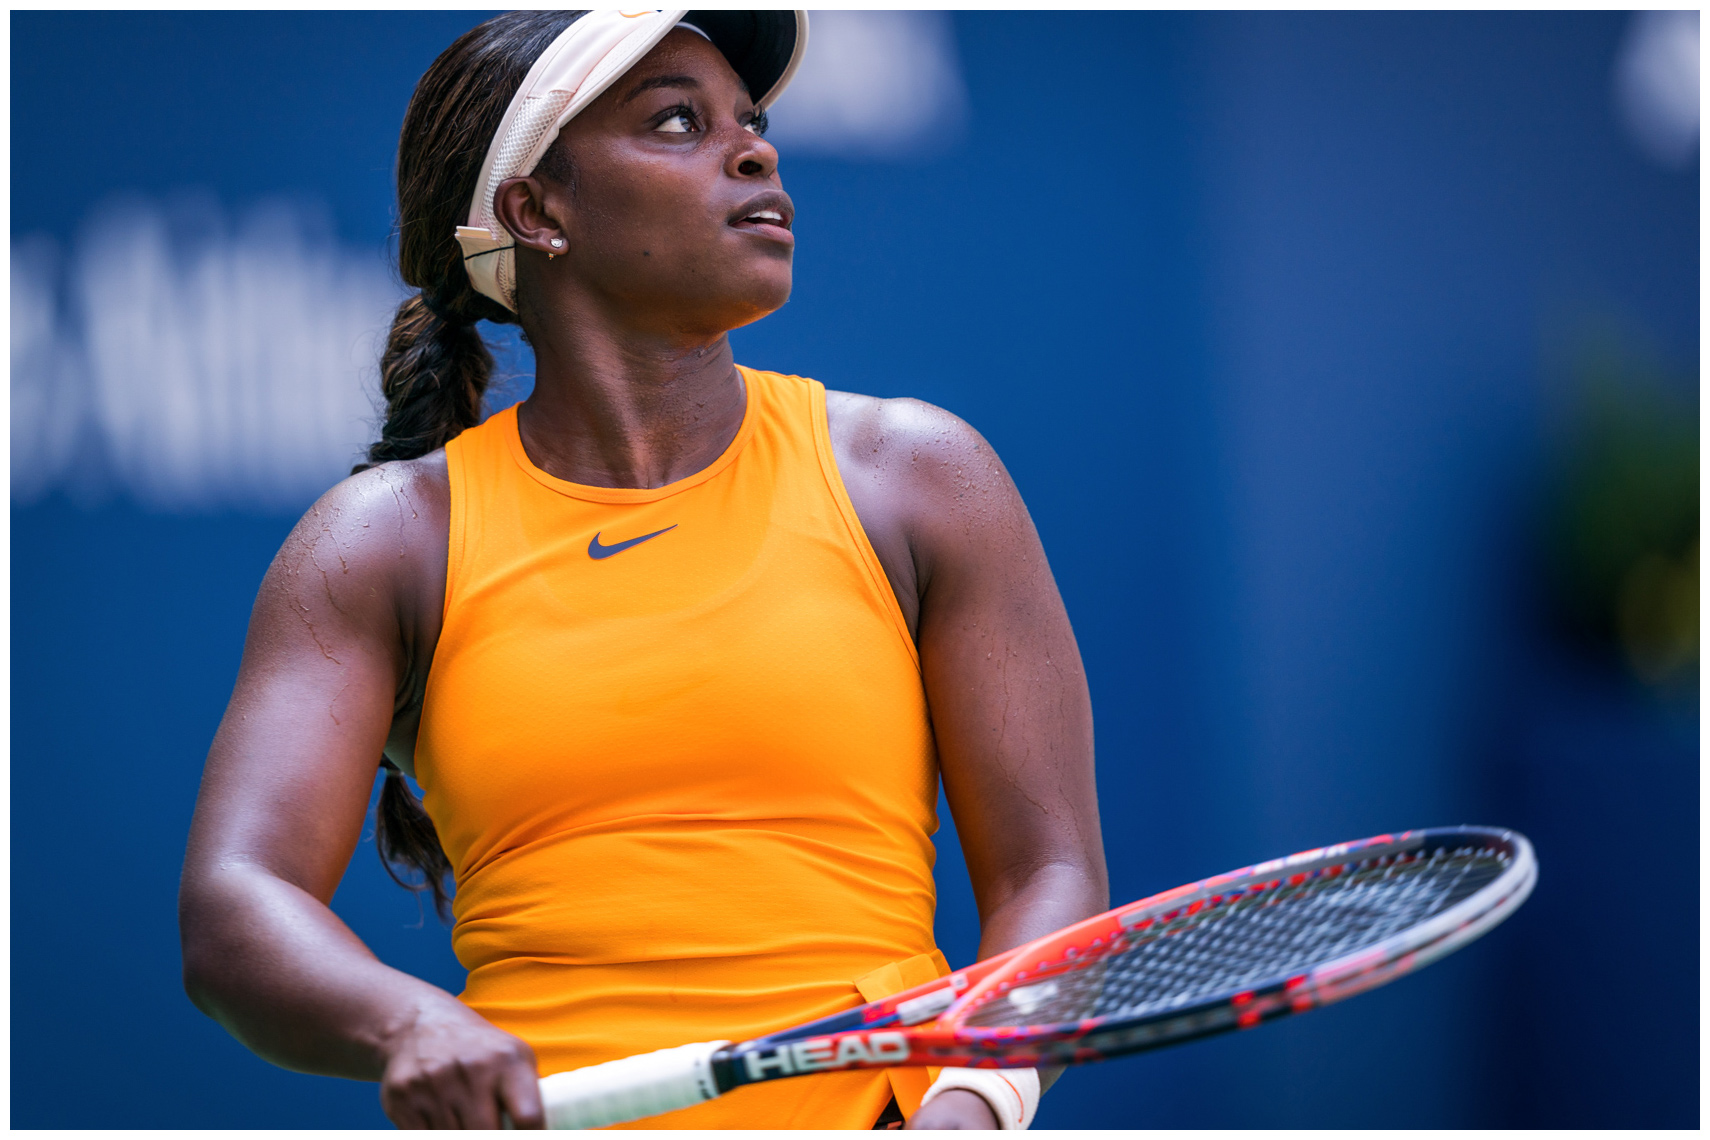 sloane-stephens-action-e-us-open-tennis-mercedes-benz-ambassador